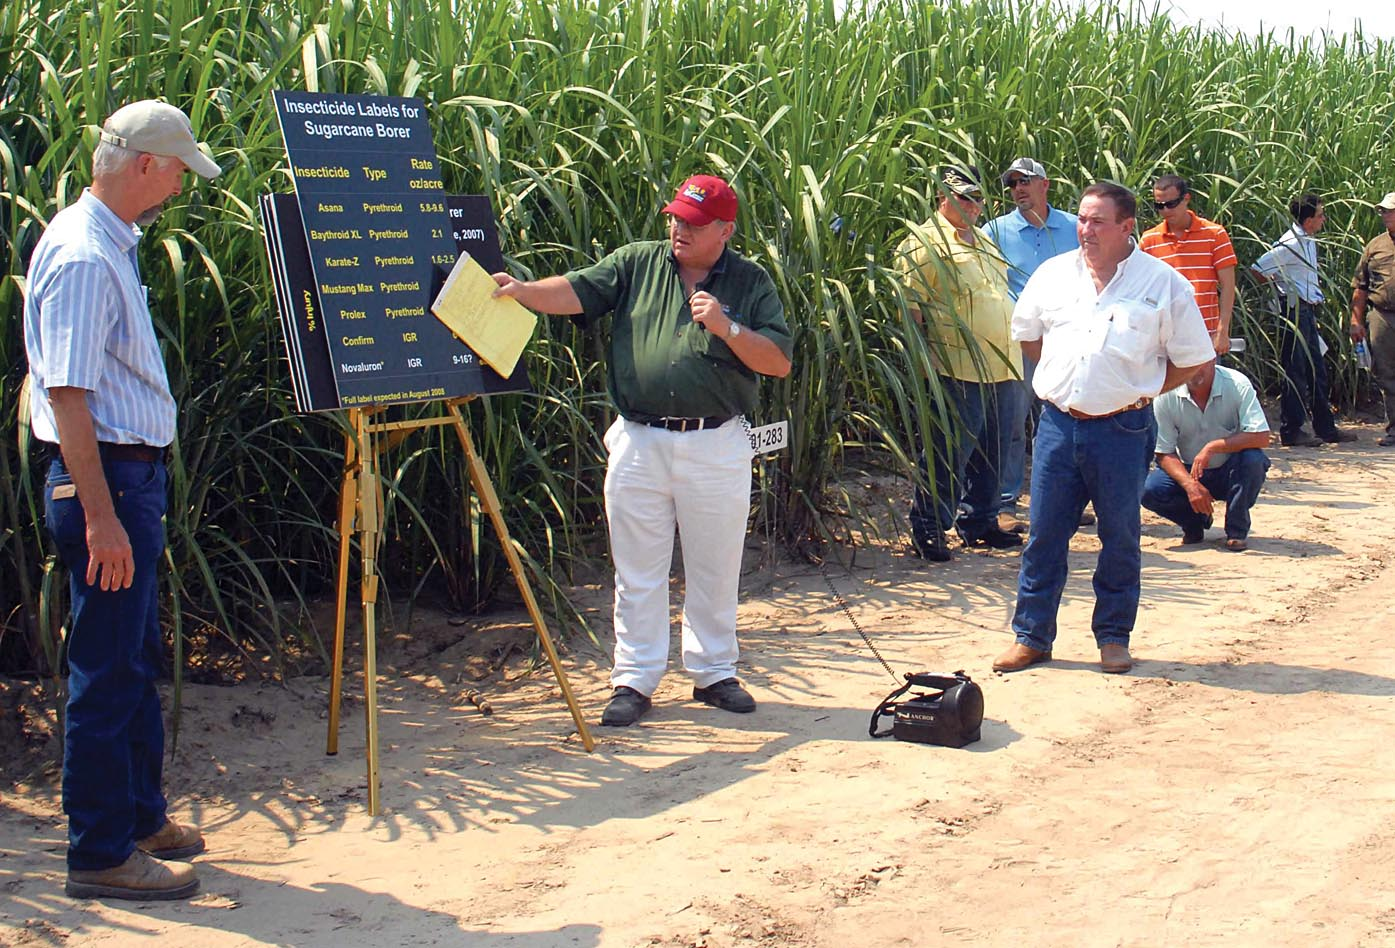 Rust keeps threatening Louisiana sugarcane